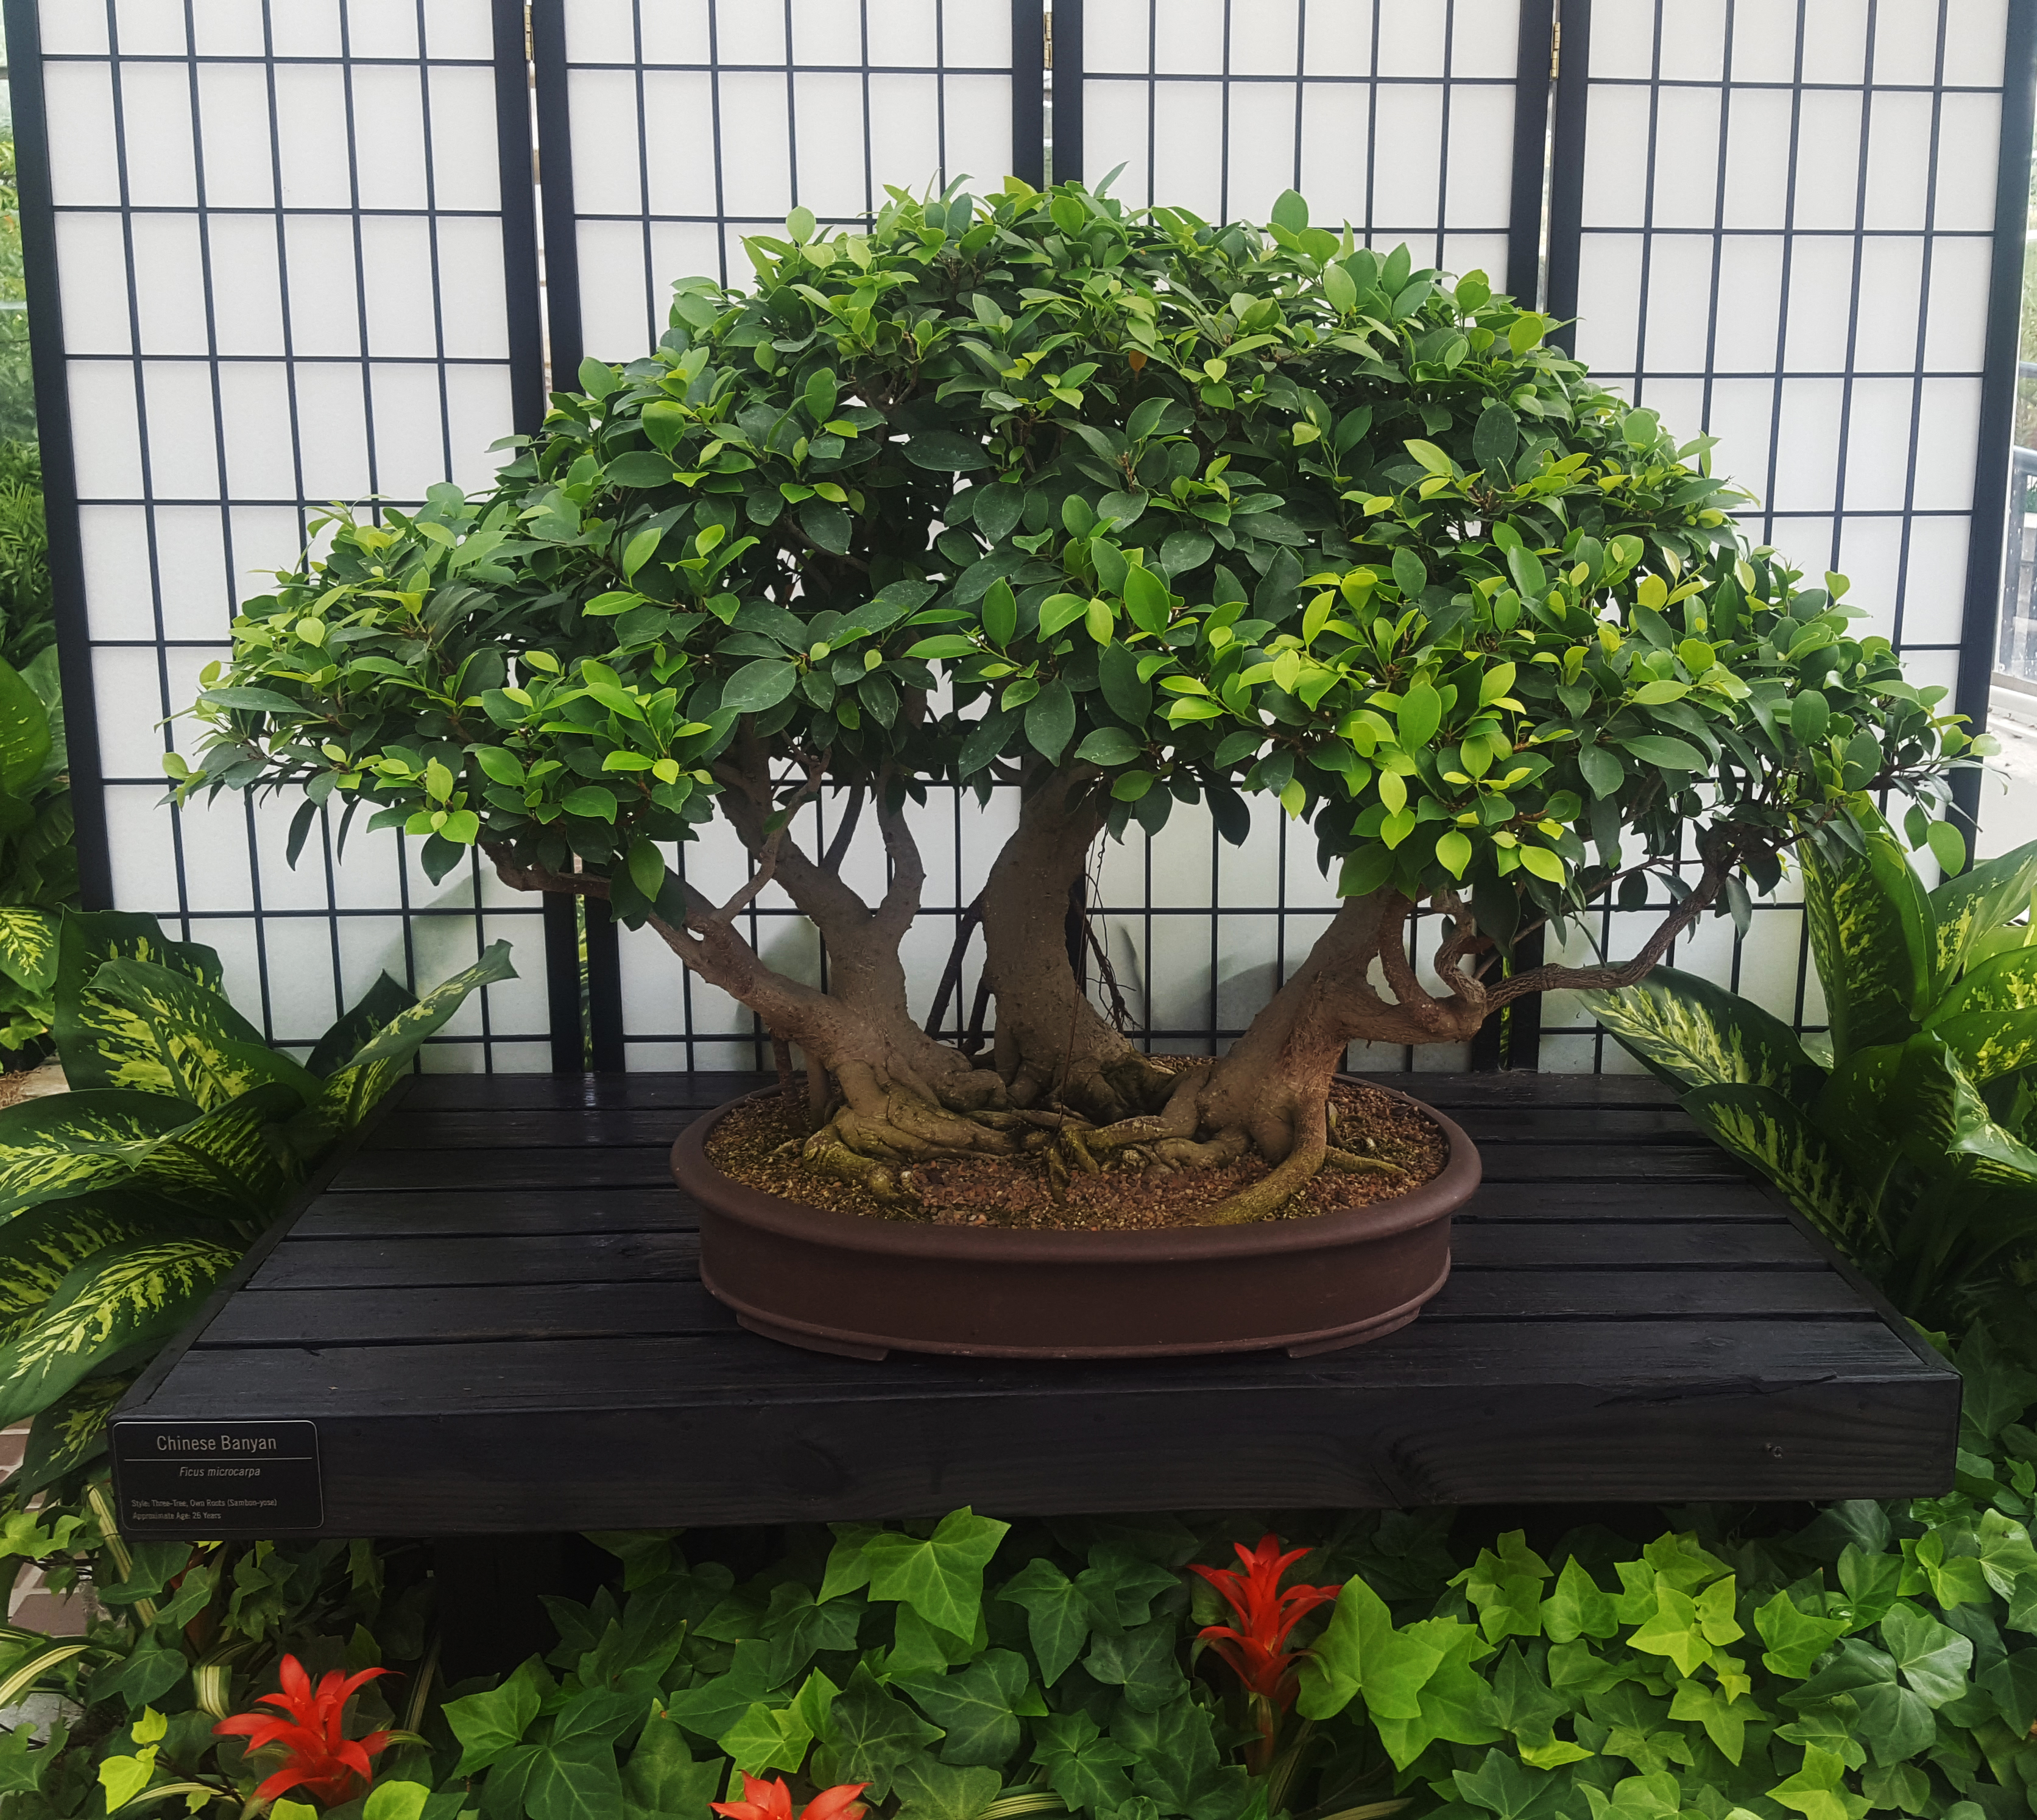 Bored with run-of-the-mill houseplants? Try bonsai